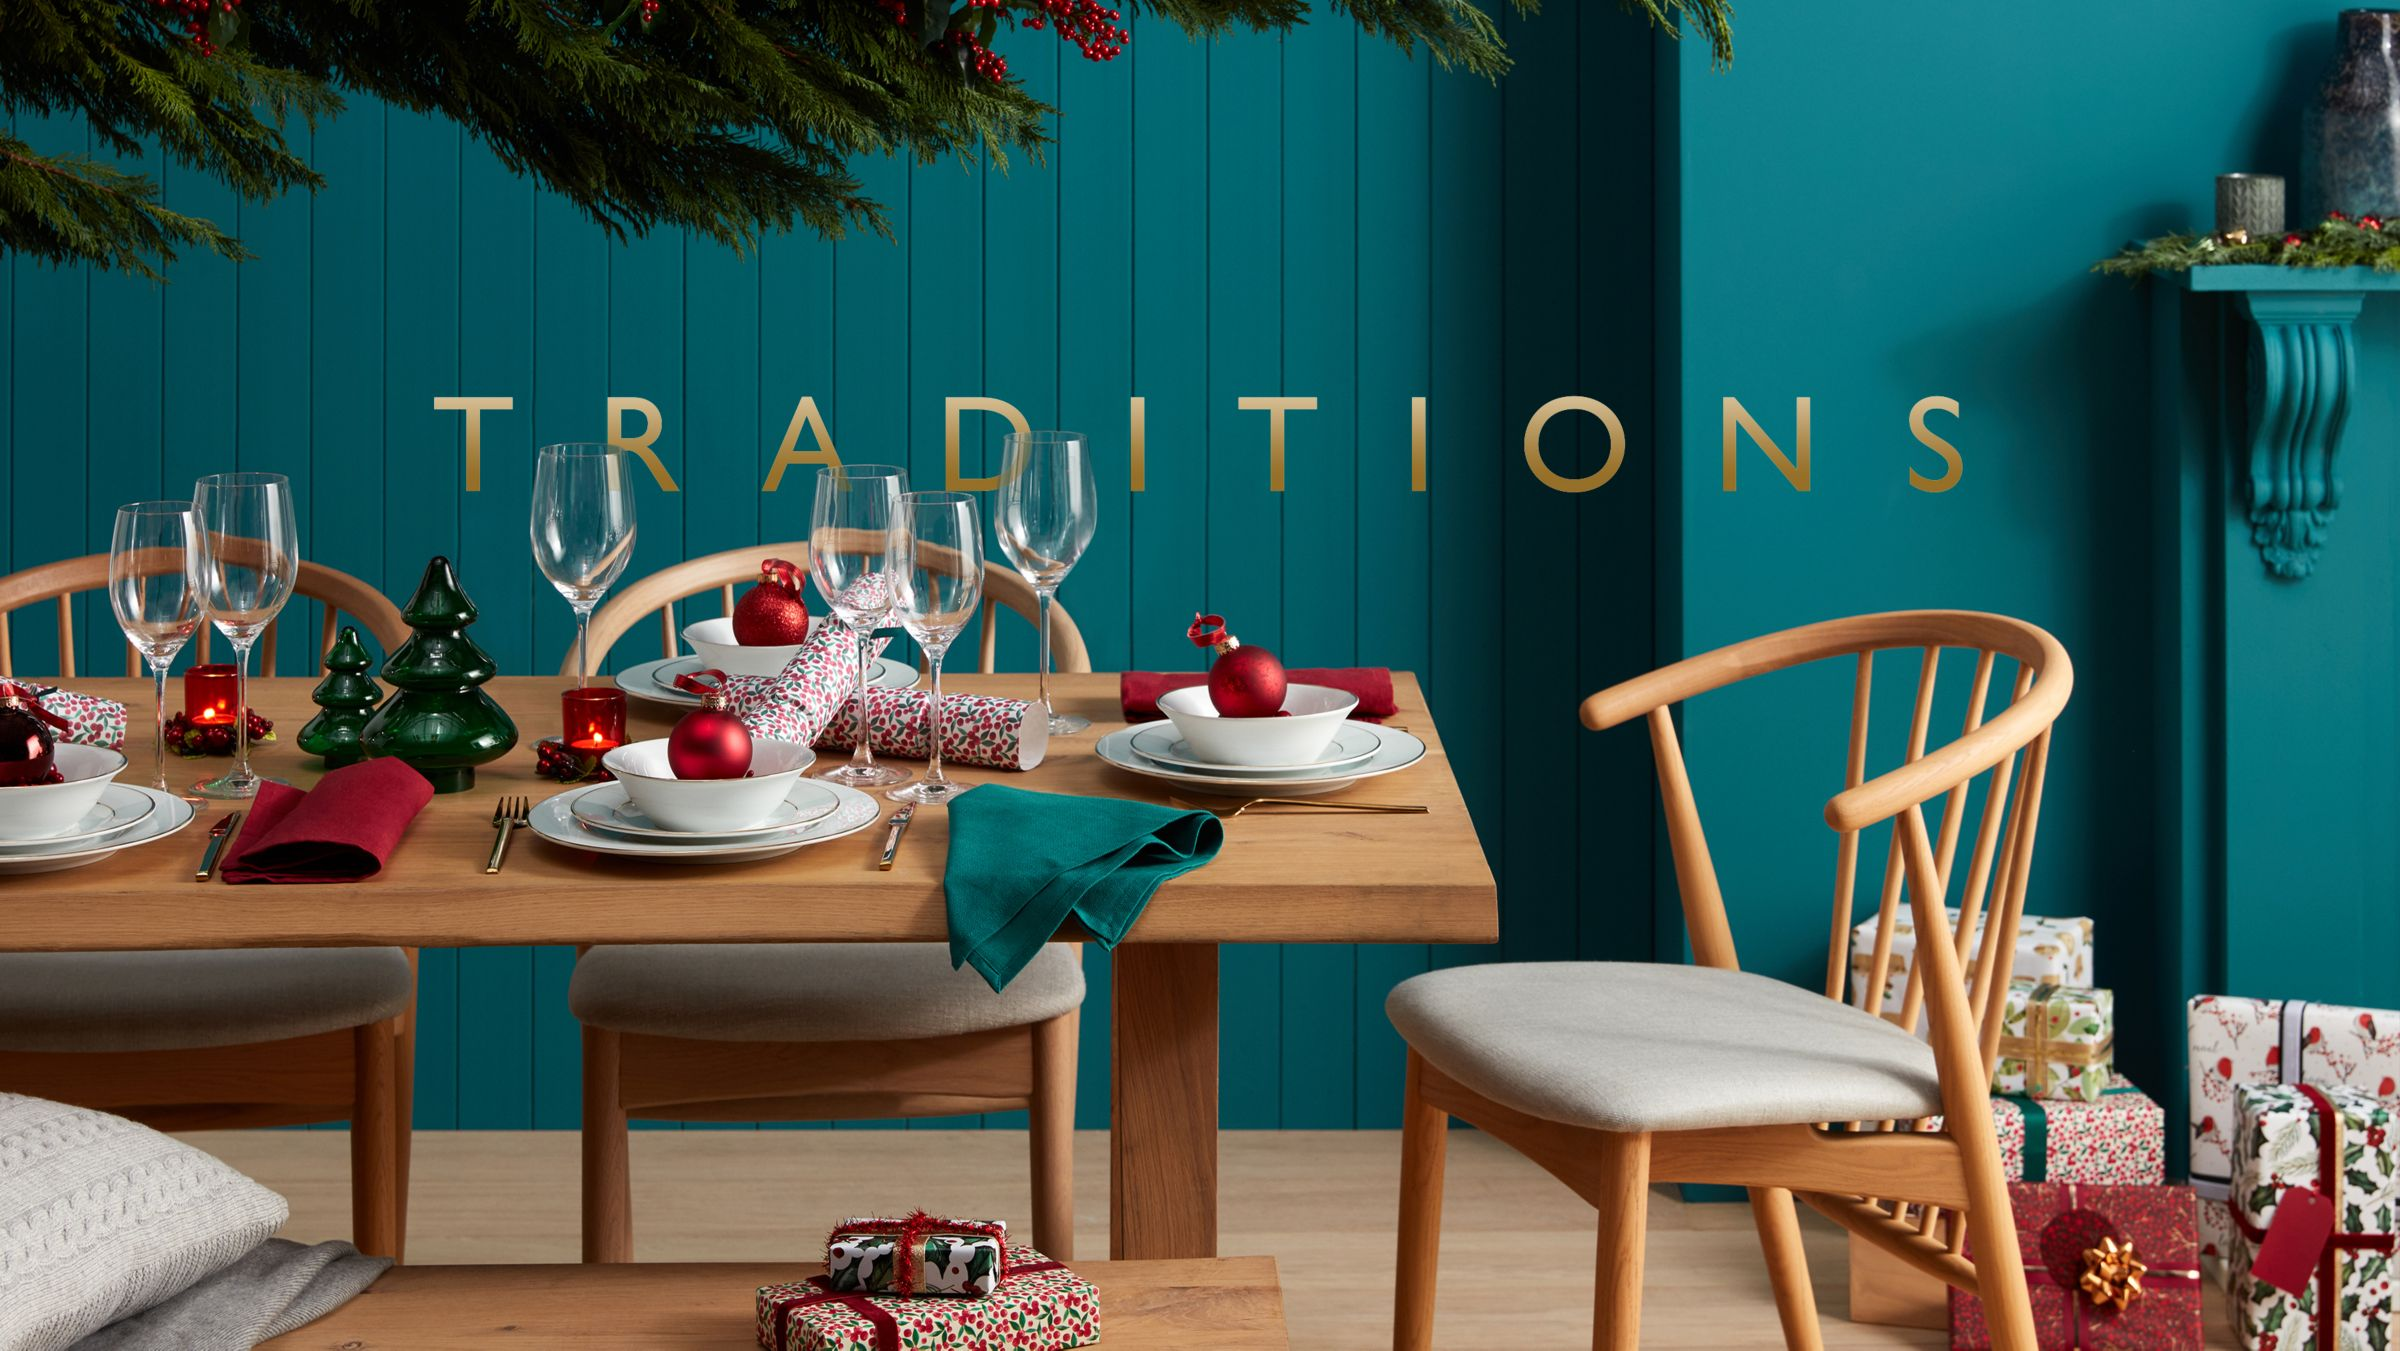 Christmas Trends - The Traditions